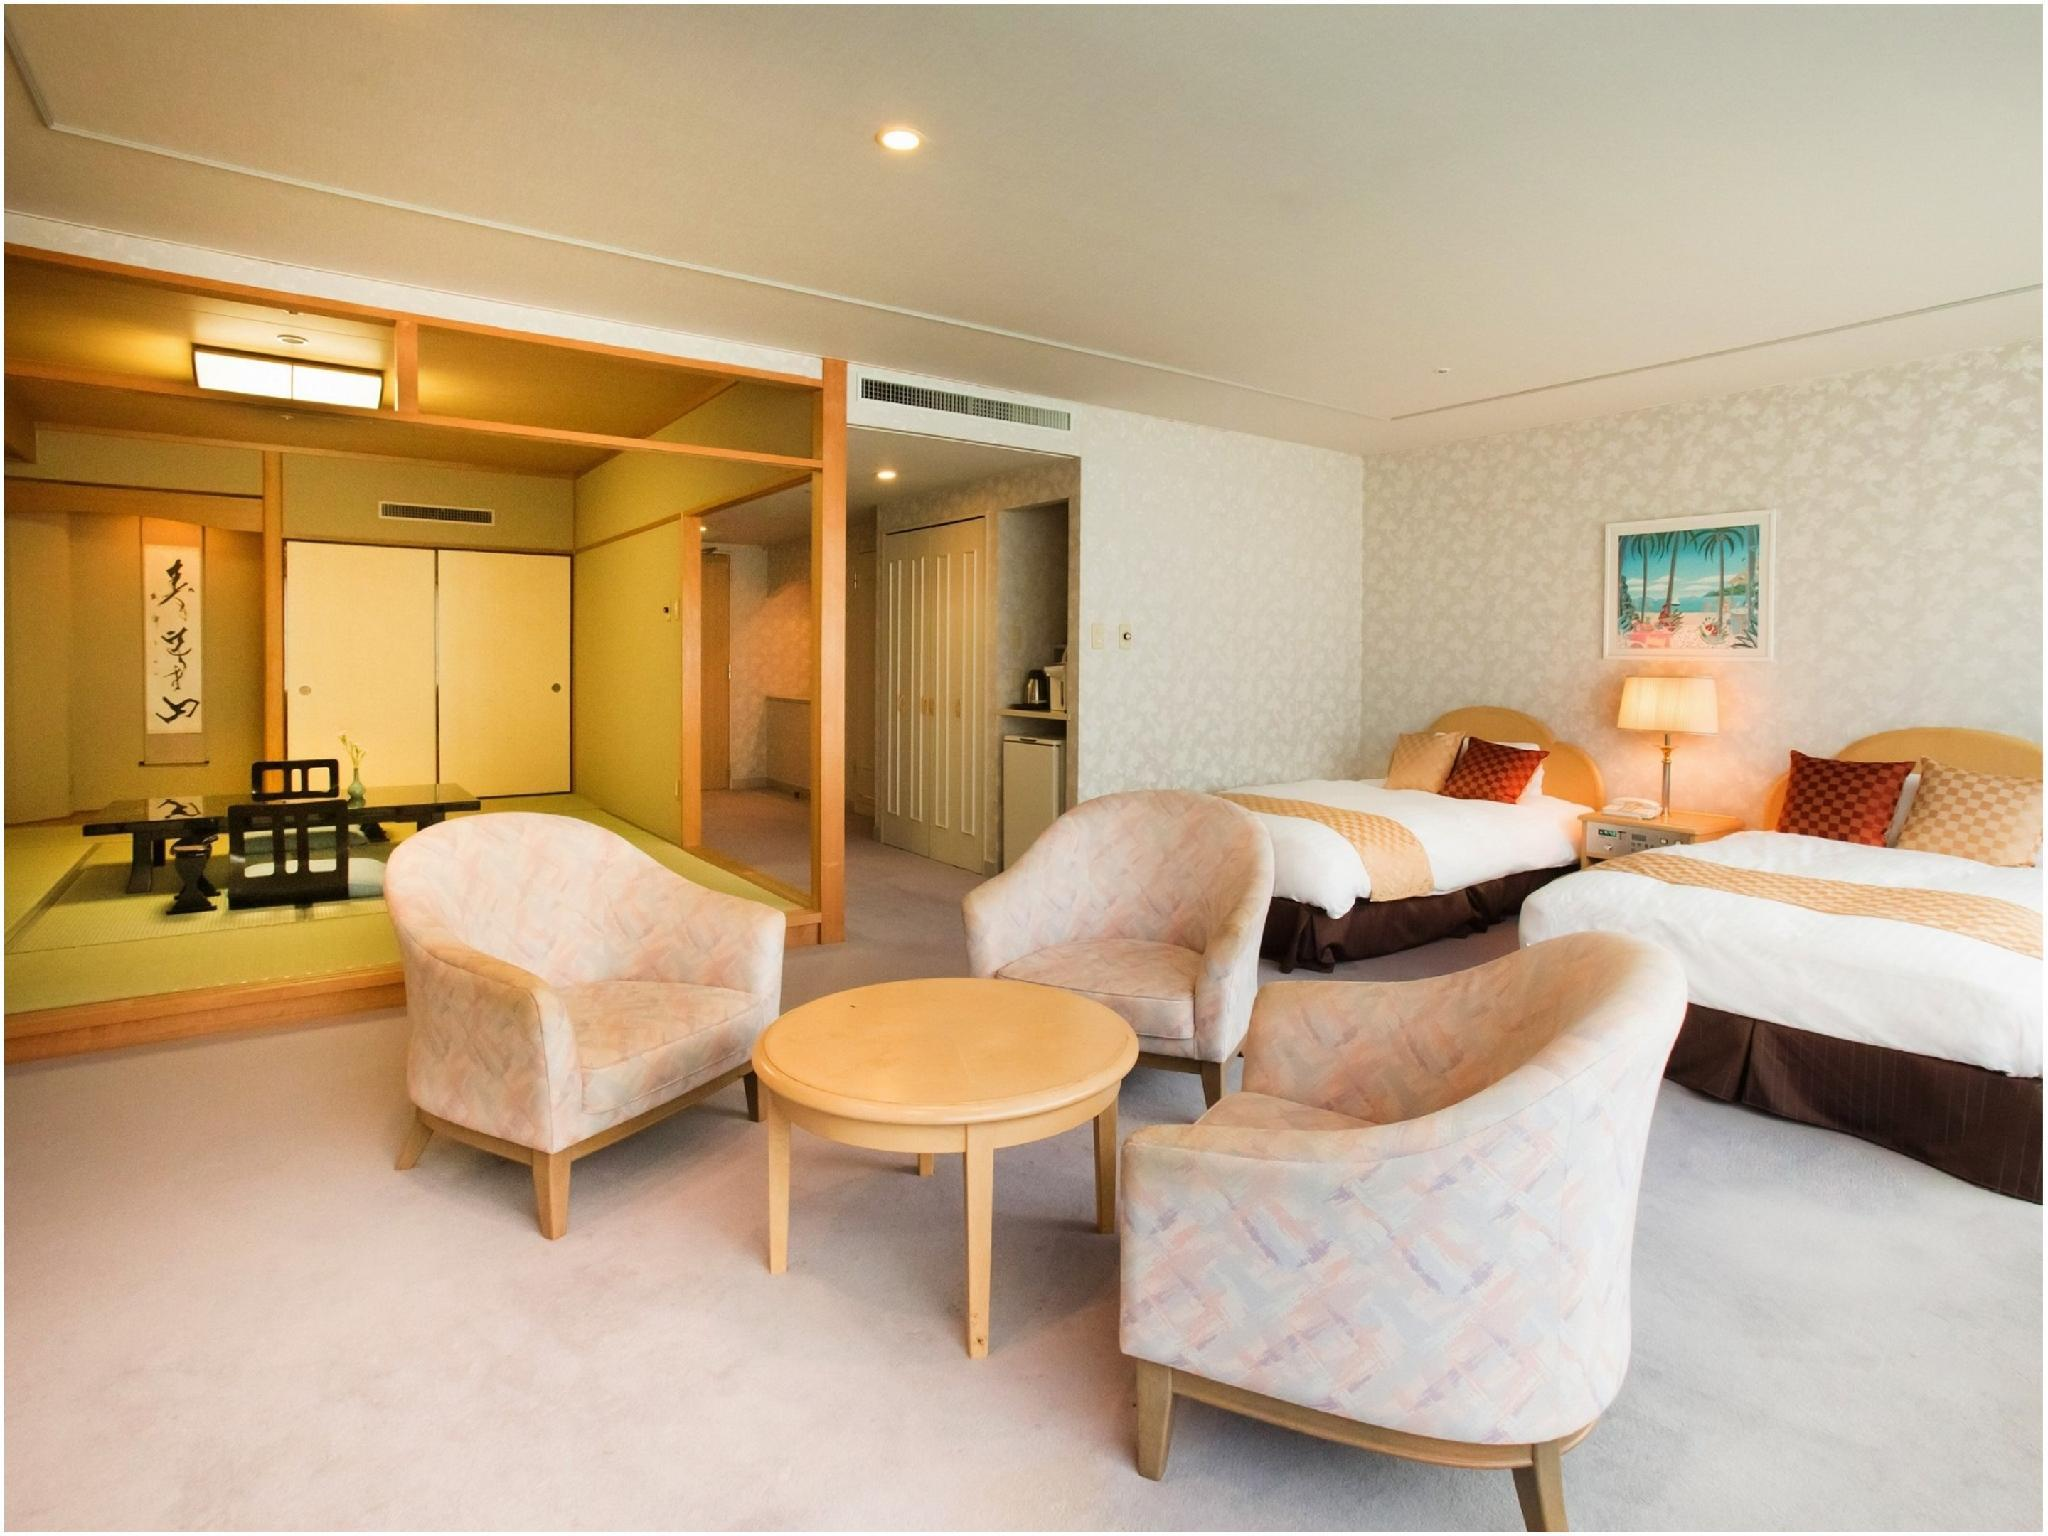 標準樓層 和洋式房(2張床) (Japanese/Western-style Room (2 Beds, Standard Floor))